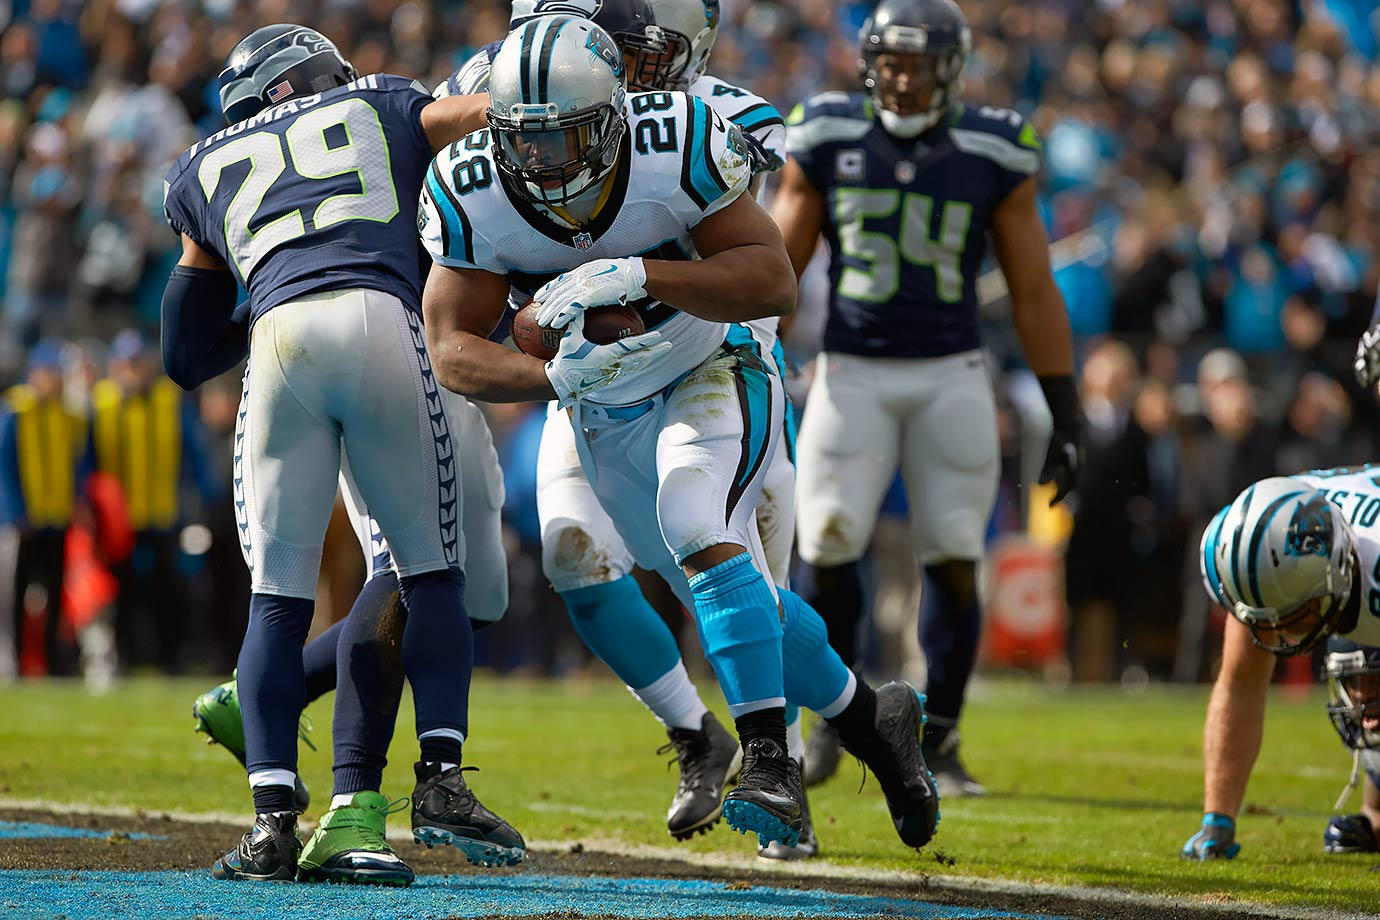 After Seattle snuck by the Minnesota Vikings on Blair Walsh's missed field goal to earn a playoff date against Carolina, the Panthers jumped out to another fast start, followed by another scare in the second half. Newton threw for 161 yards and a touchdown, while Stewart rushed for 106 yards and two touchdowns, giving the Panthers a 31-0 lead in the second quarter. Seattle quarterback Russell Wilson brought the Seahawks within seven with 1:12 to go, but Carolina recovered the onside kick to preserve the victory.